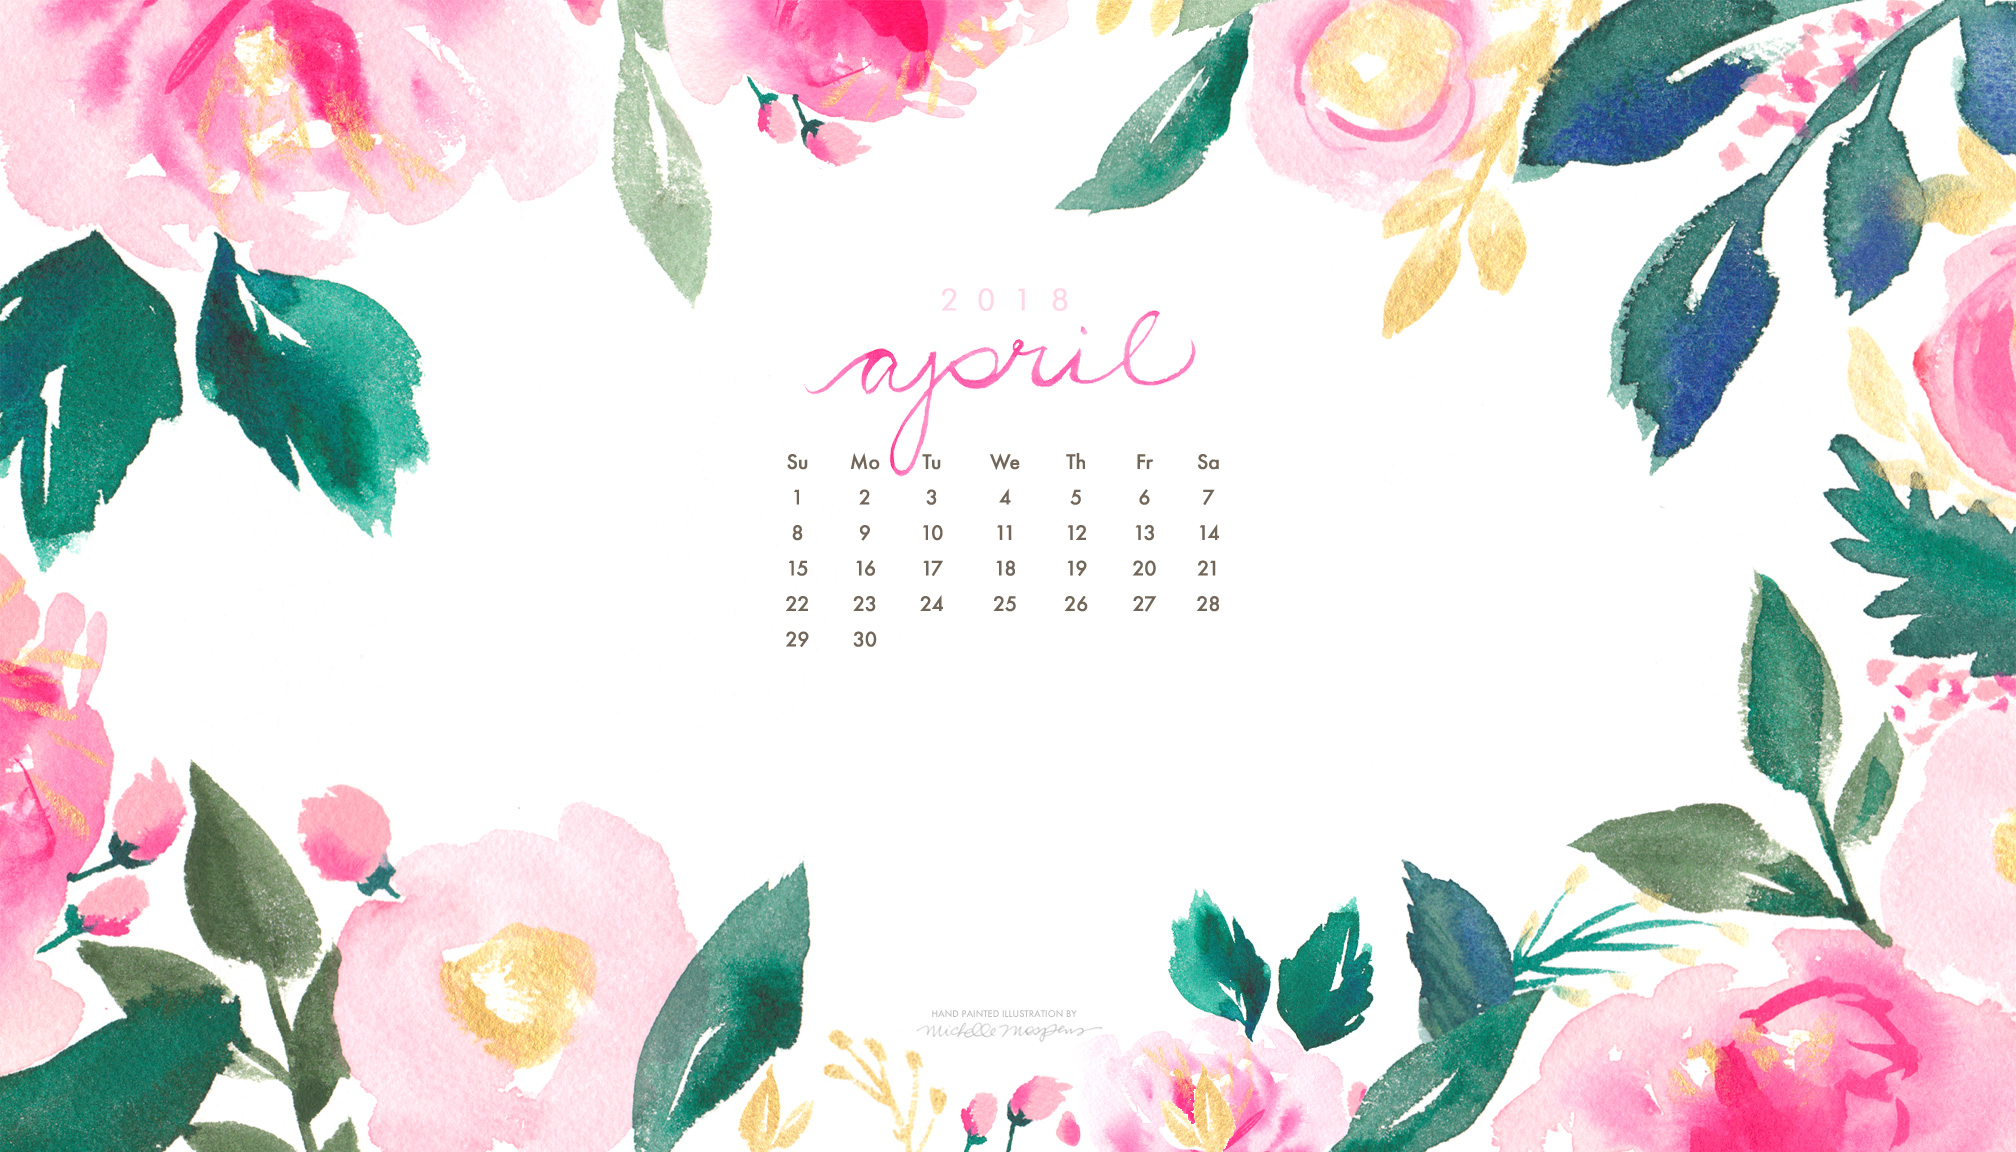 April-2018-wallpaper-calendar